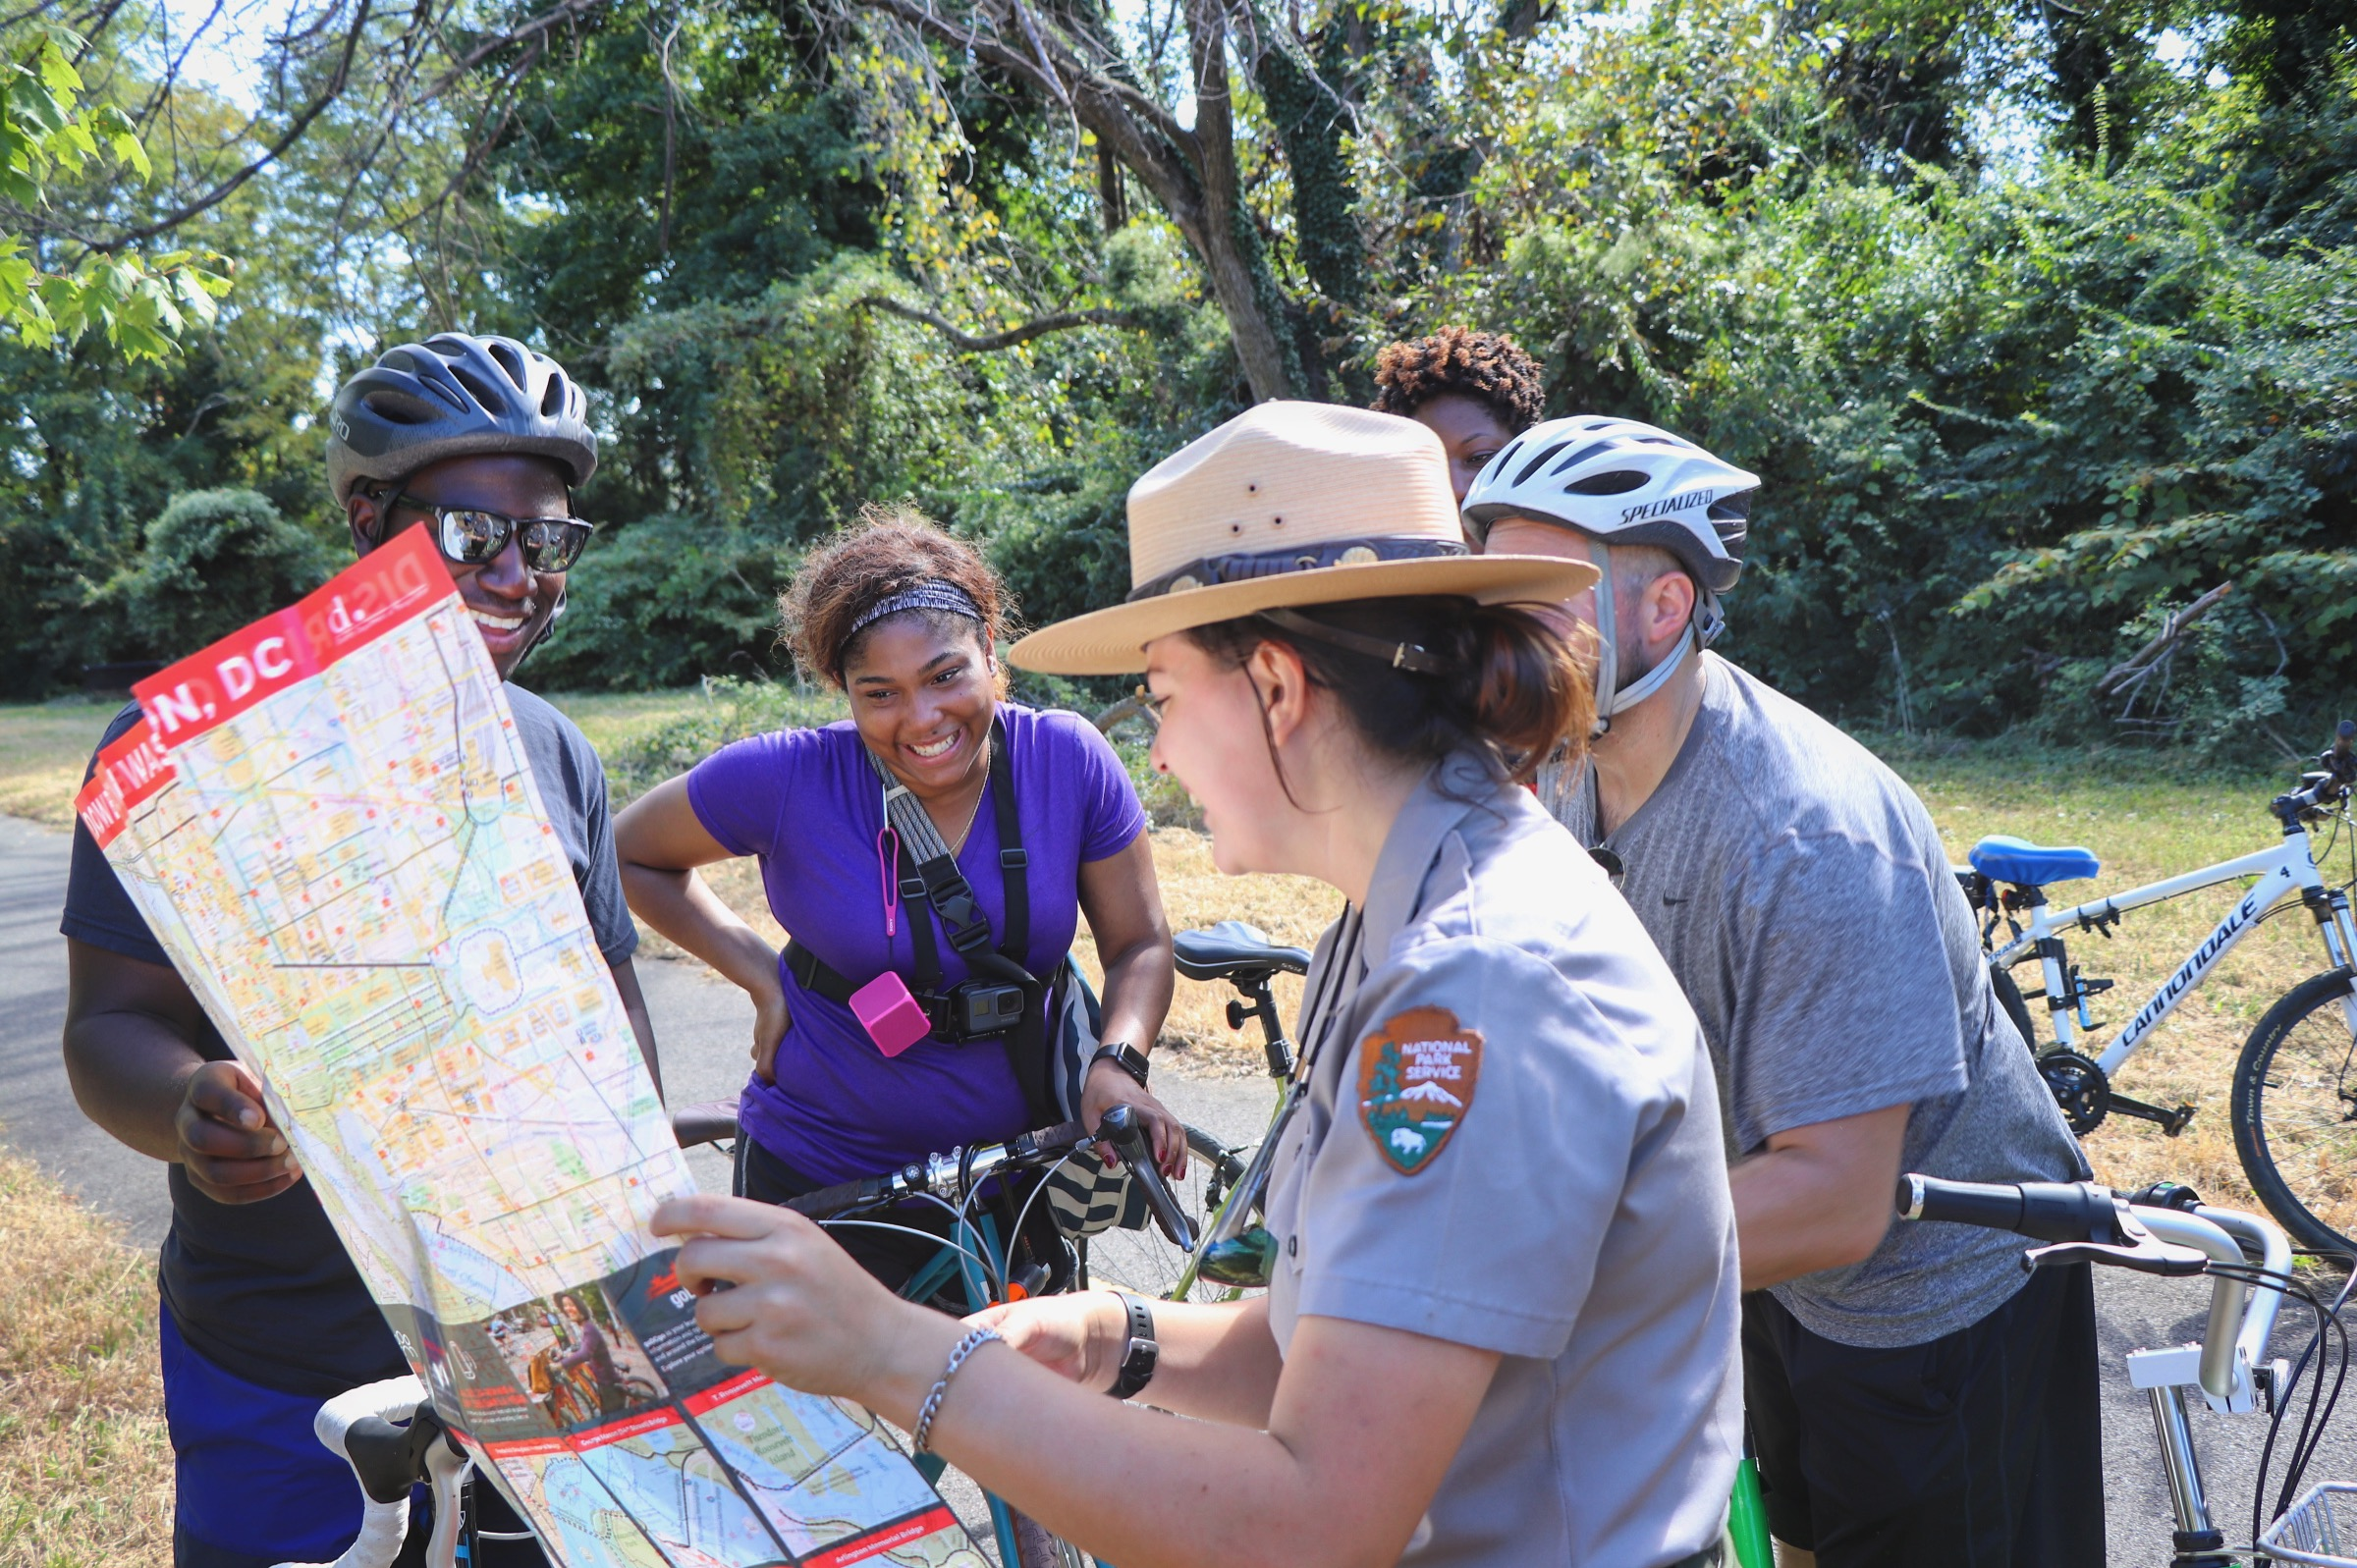 Bikers and park ranger on Anacostia Riverwalk Trail